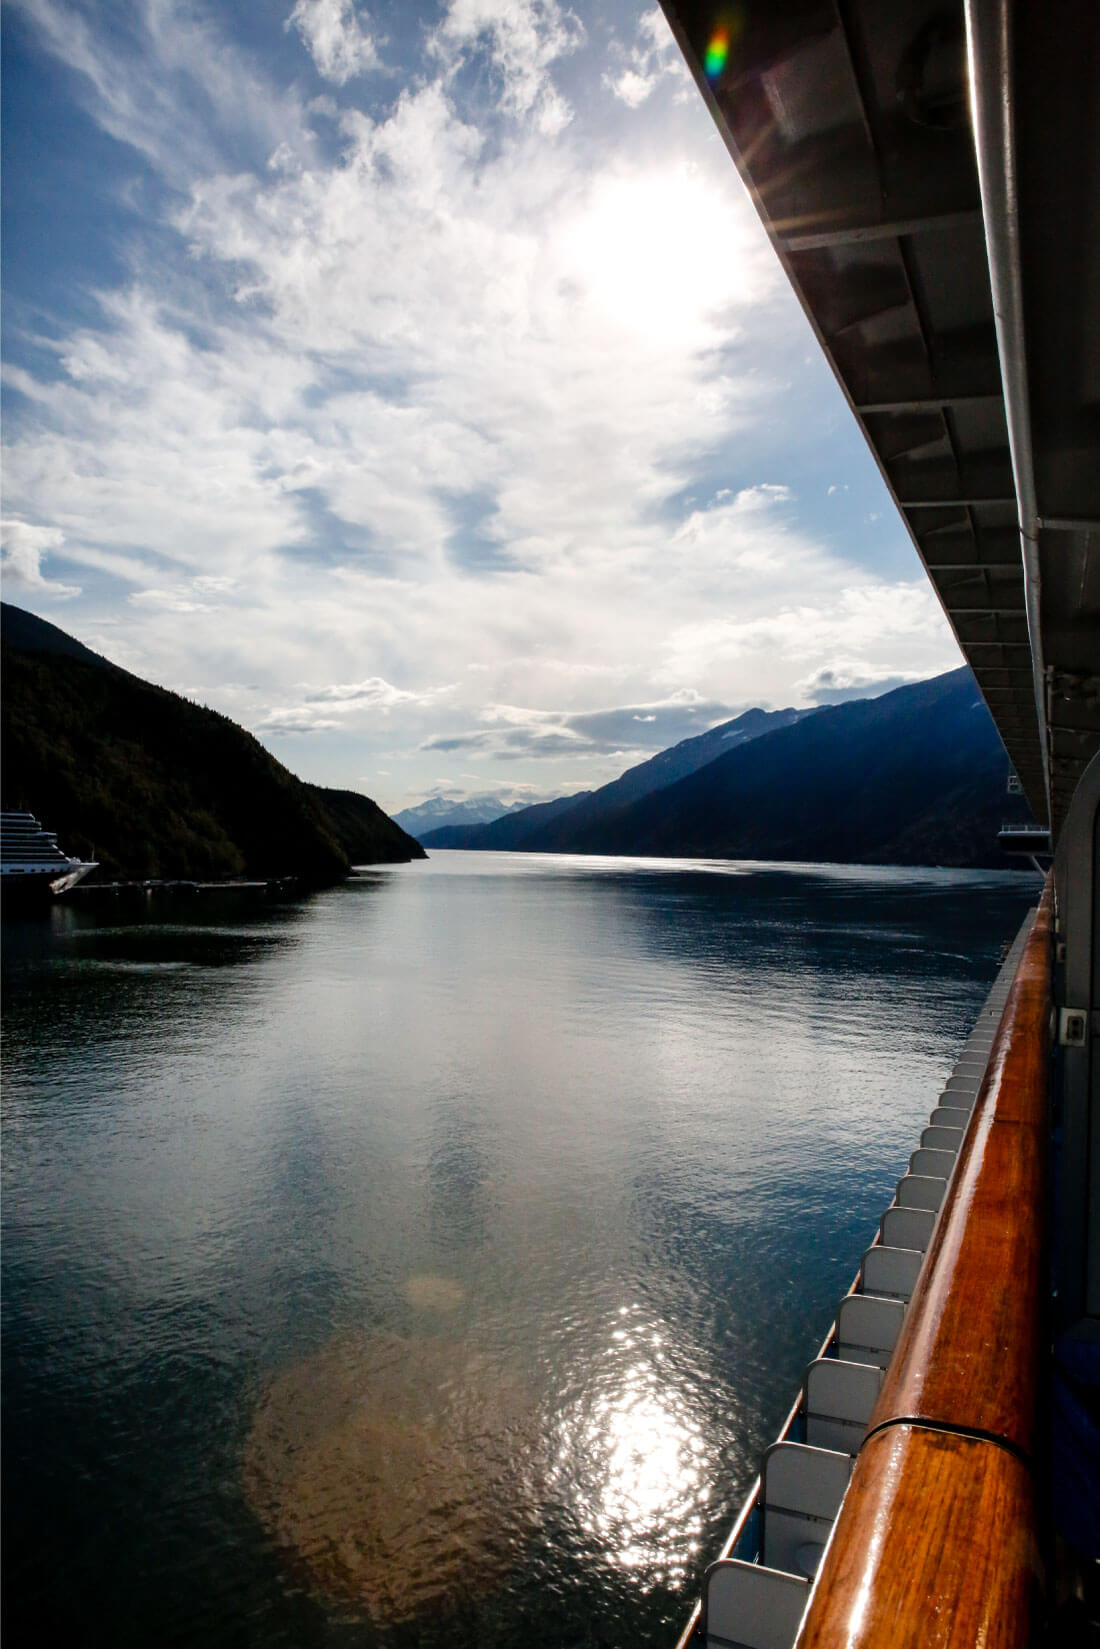 What's It Really Like Going on an Alaskan Cruise? Arriving in Skagway